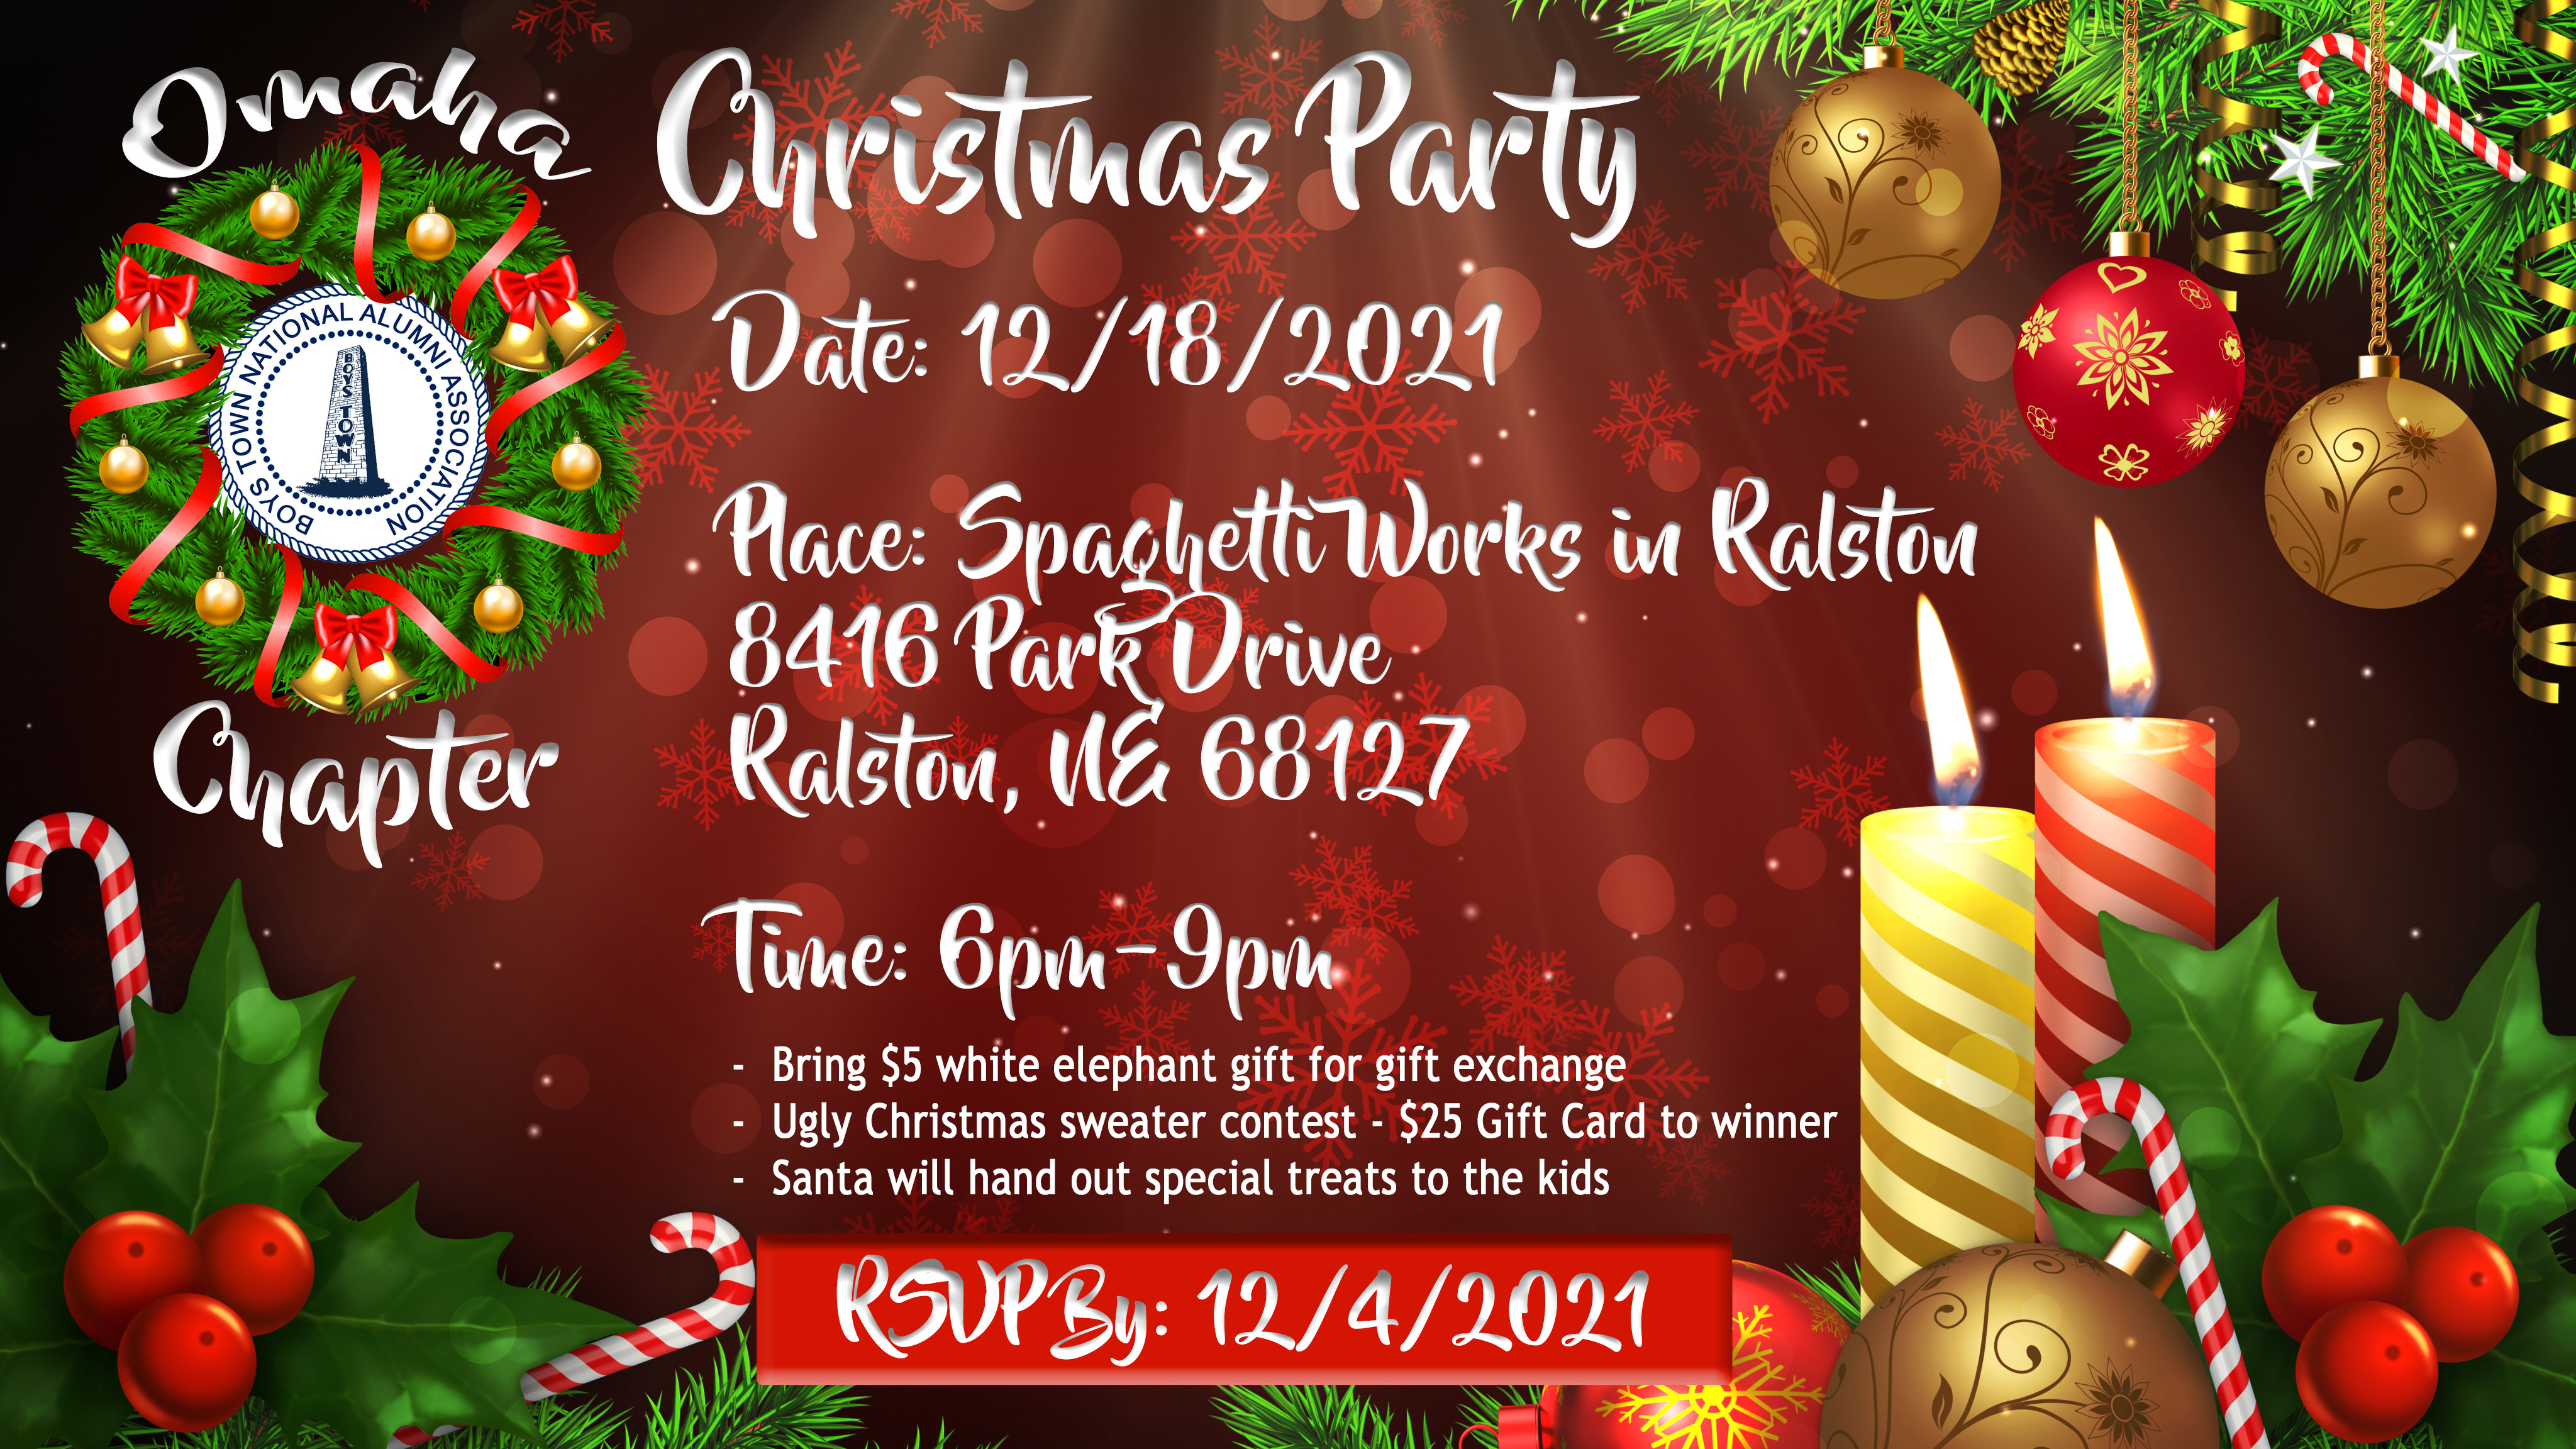 omaha-chapter-christmas-party-flyer-1